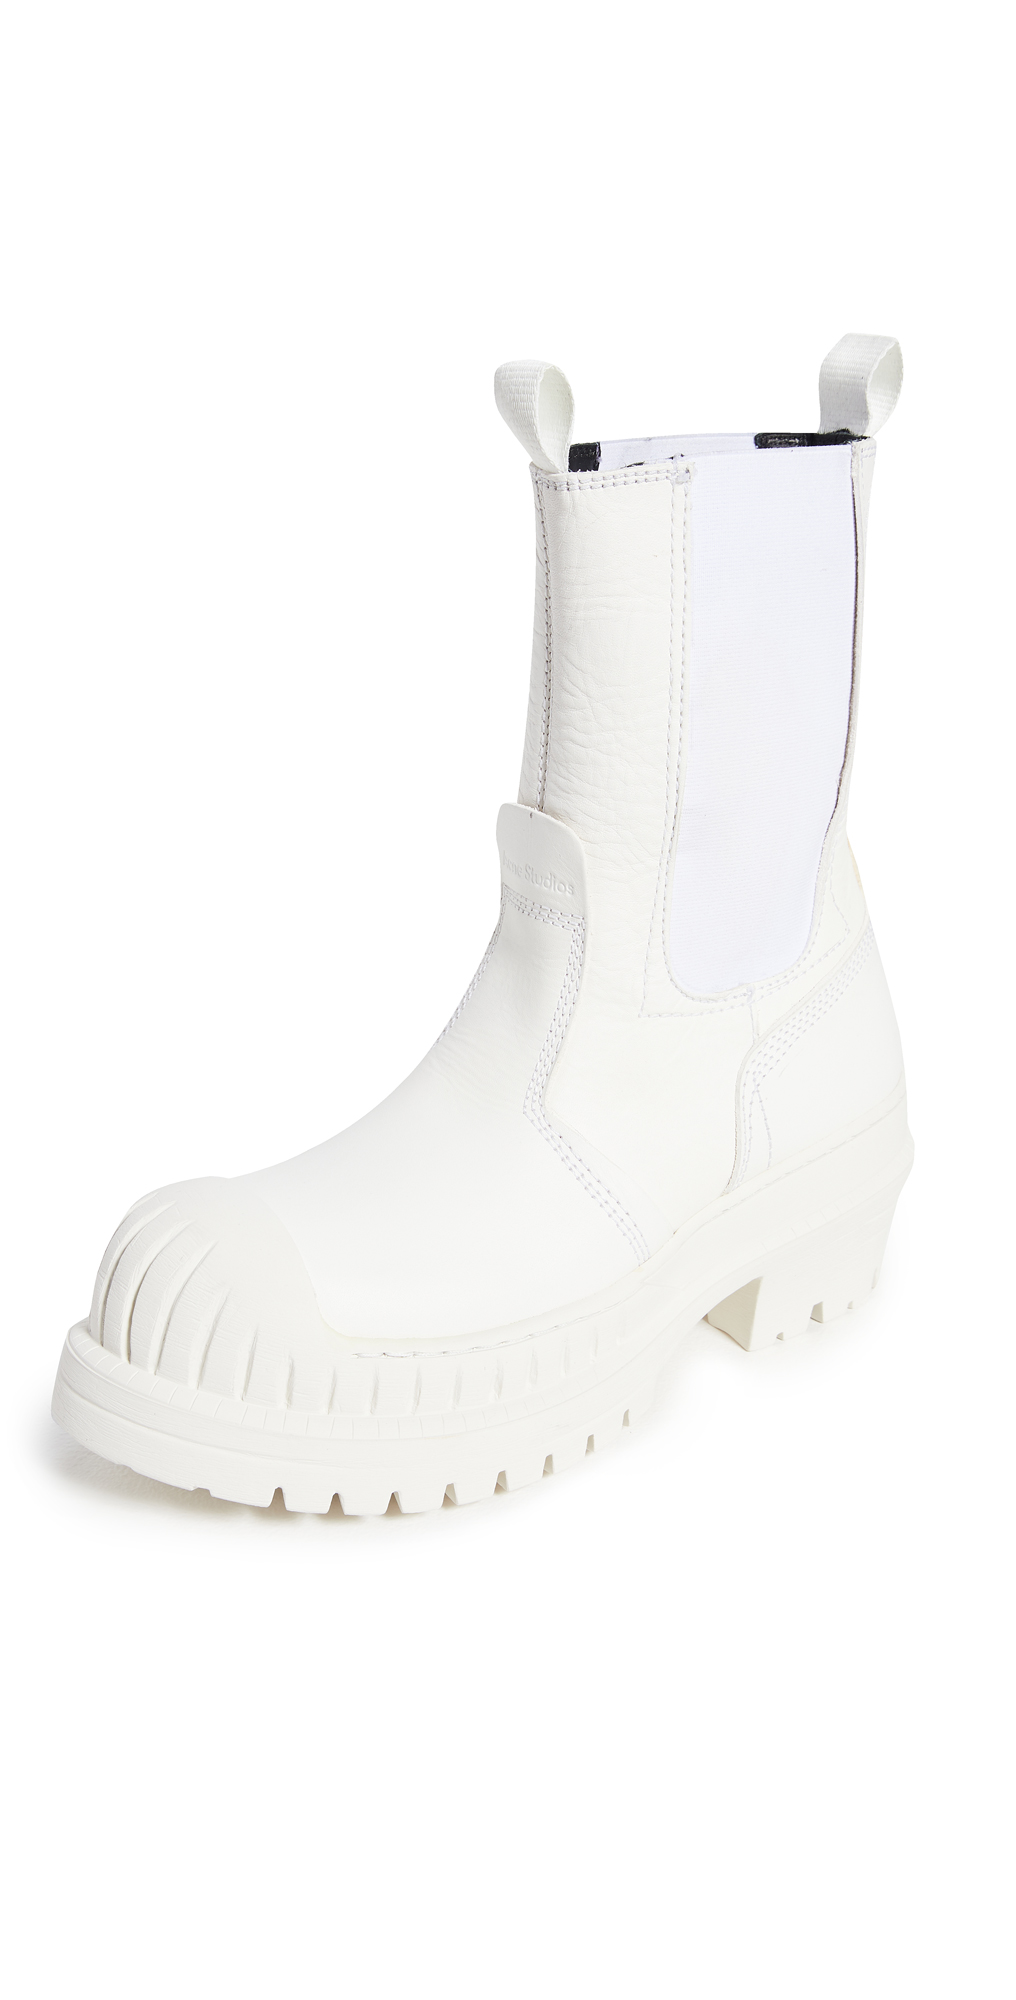 Acne Studios Track Sole Boots